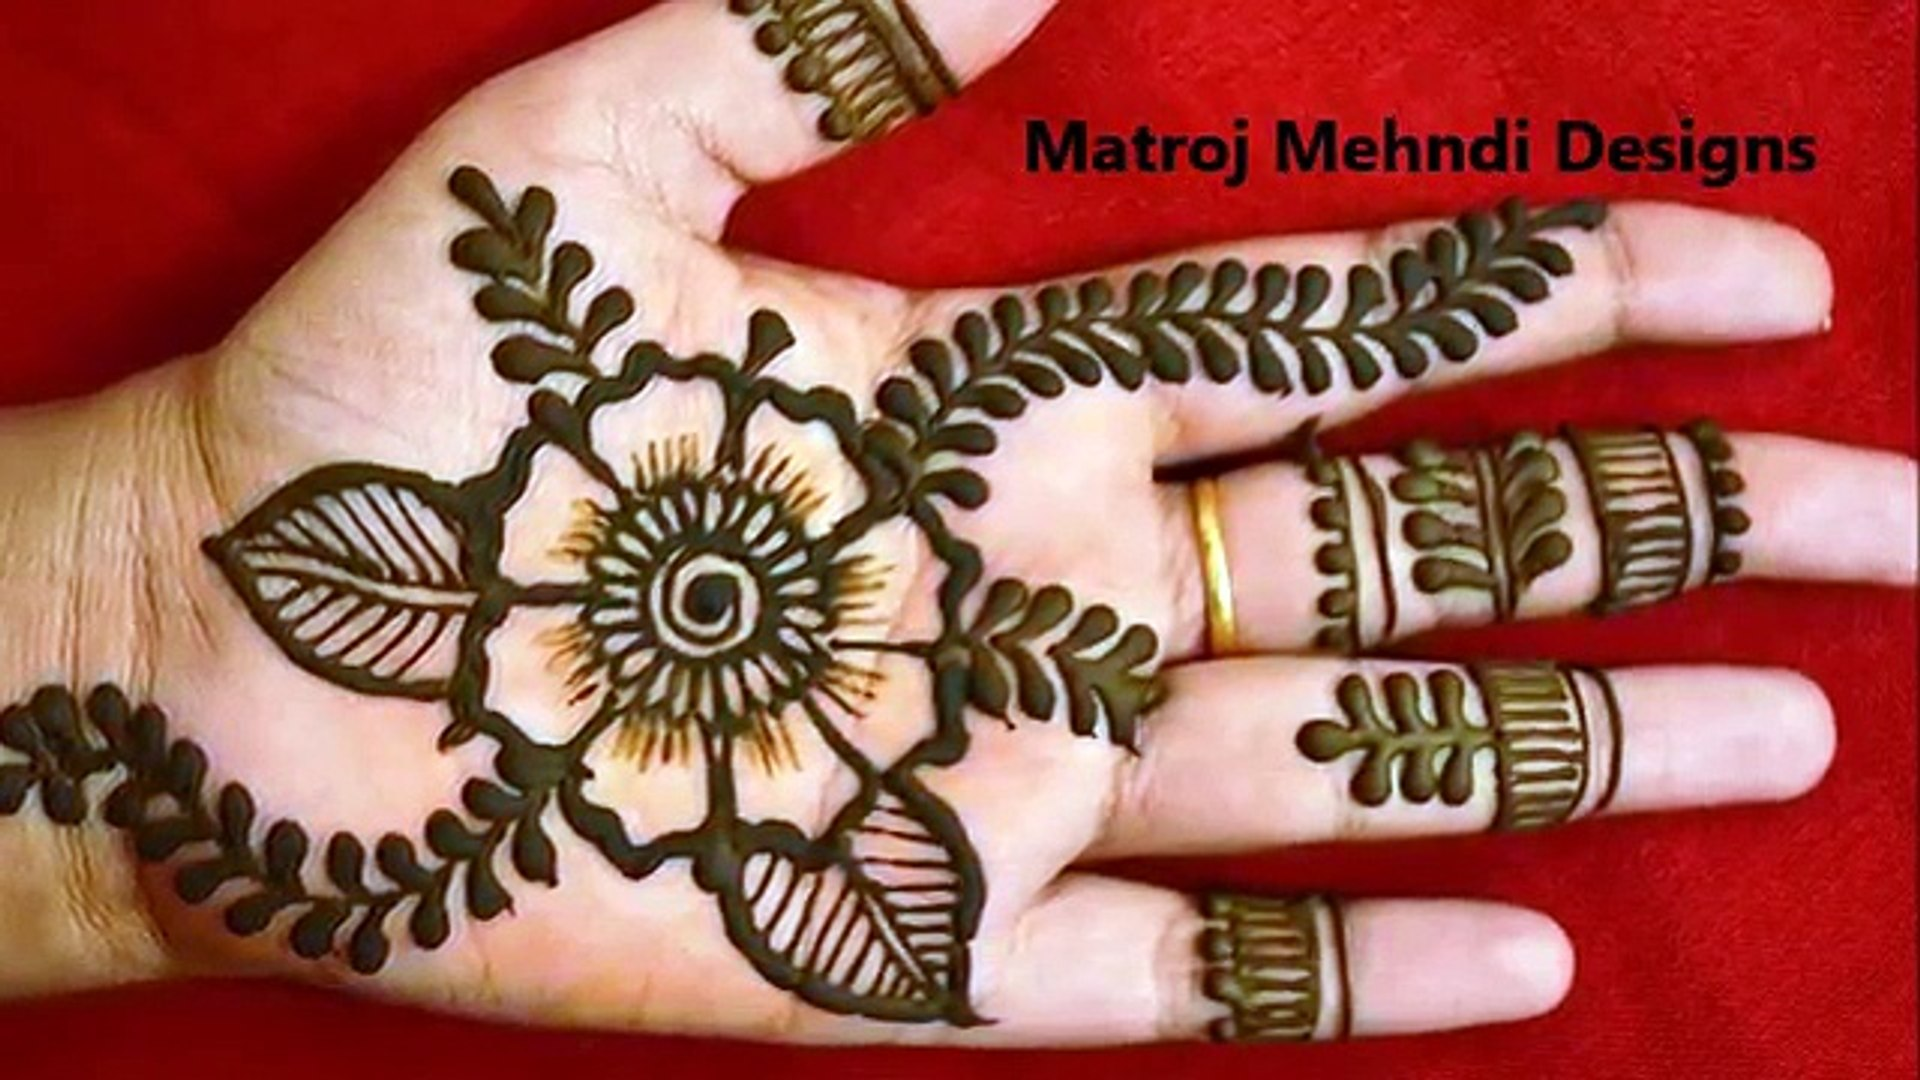 new stylish simple easy mehndi designs for hands|mehndi designs|Matroj  Mehndi Designs